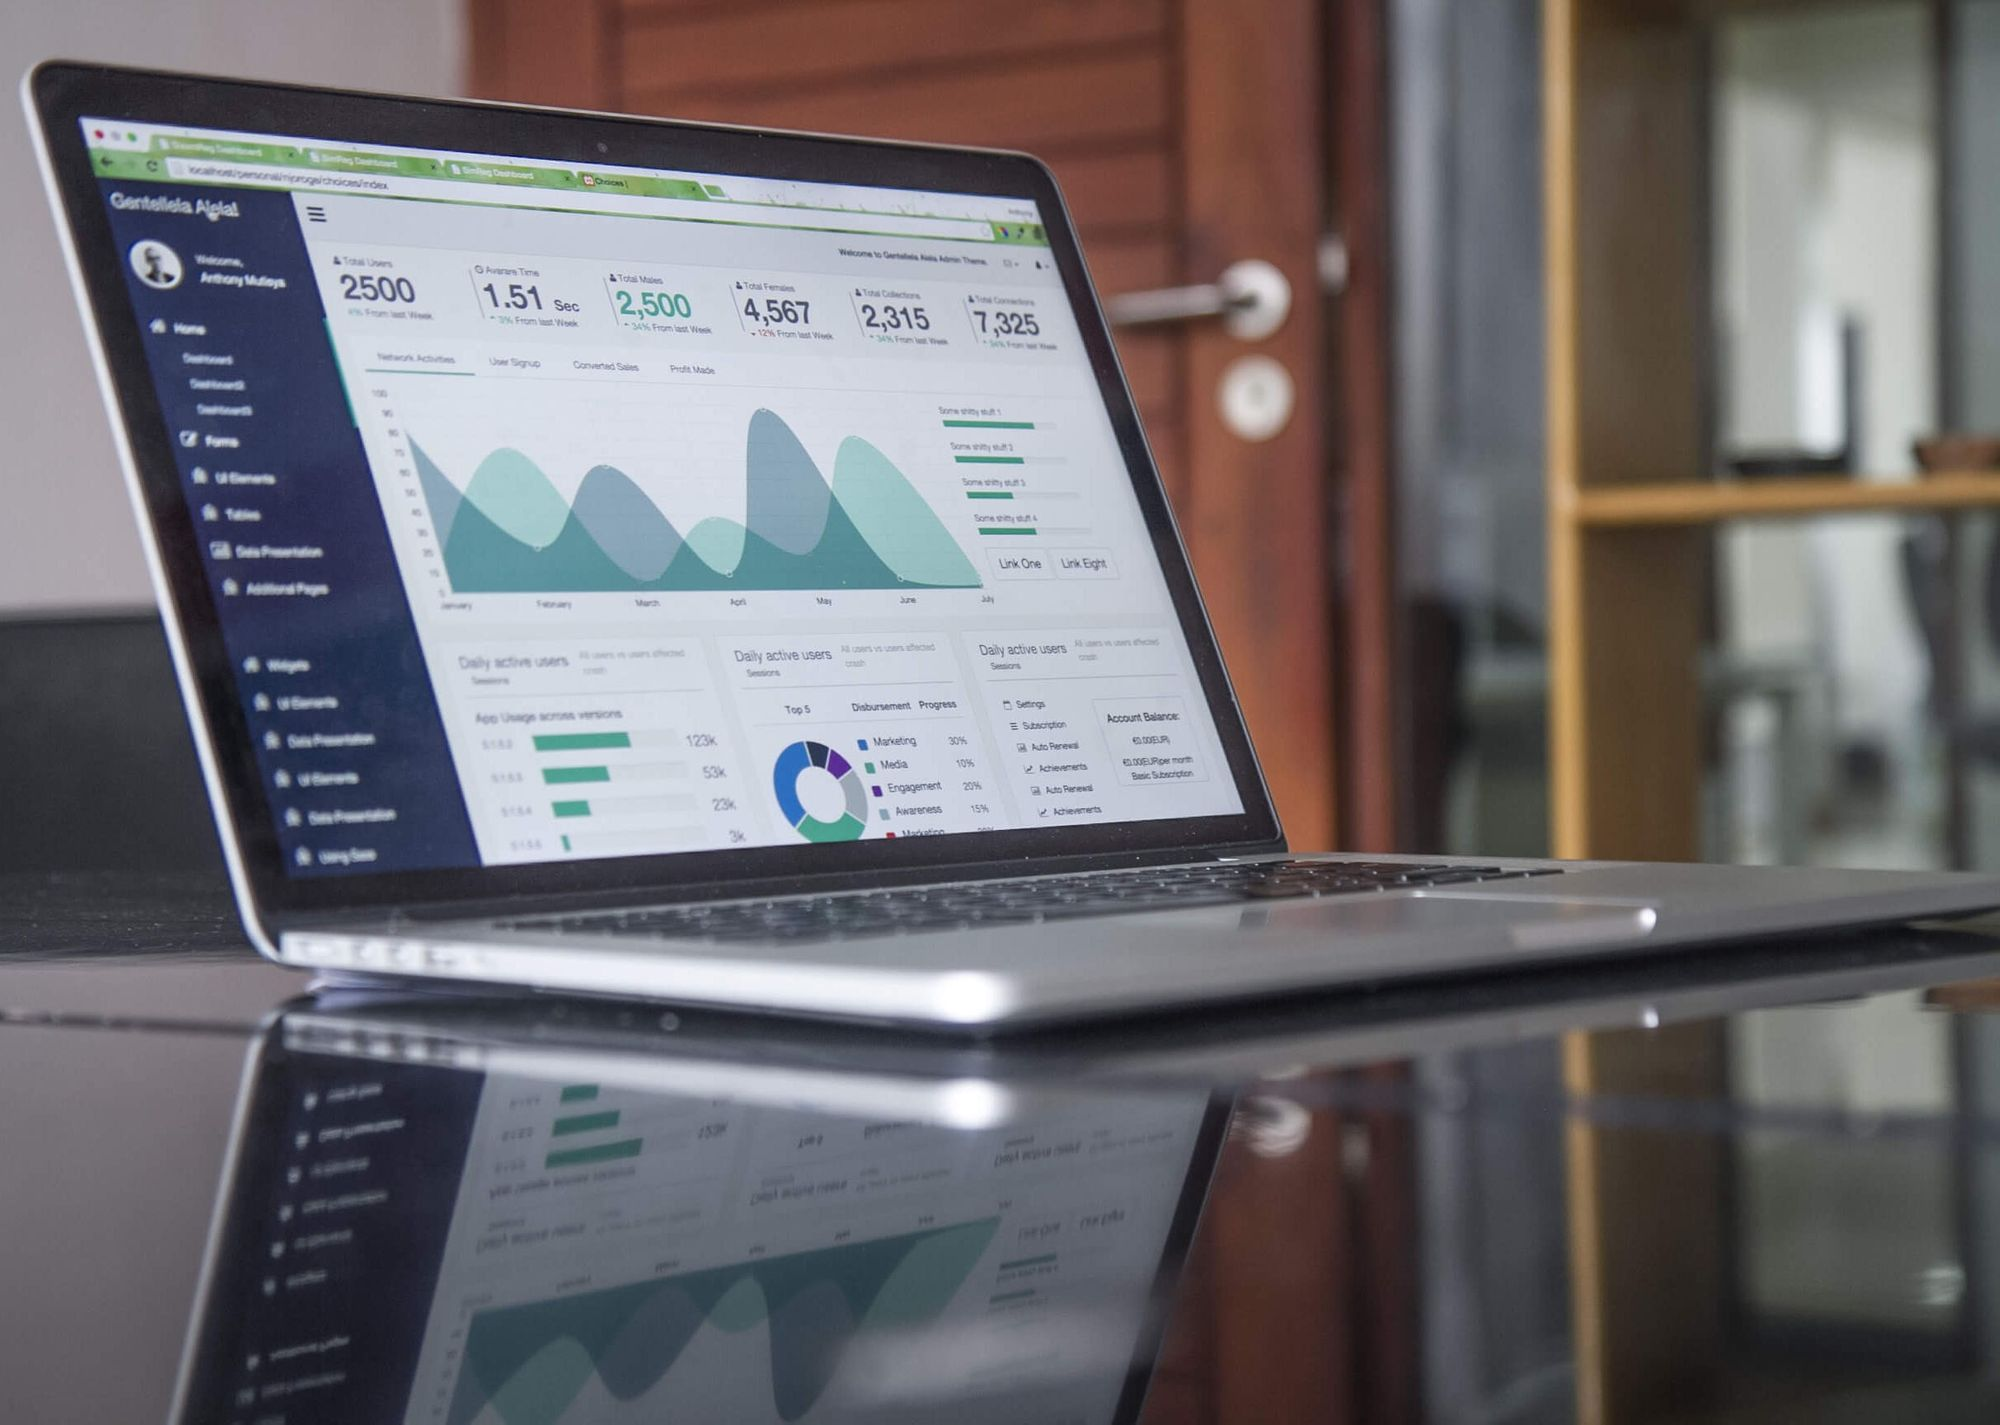 A laptop open to a detailed app dashboard full of useful data and analytics.